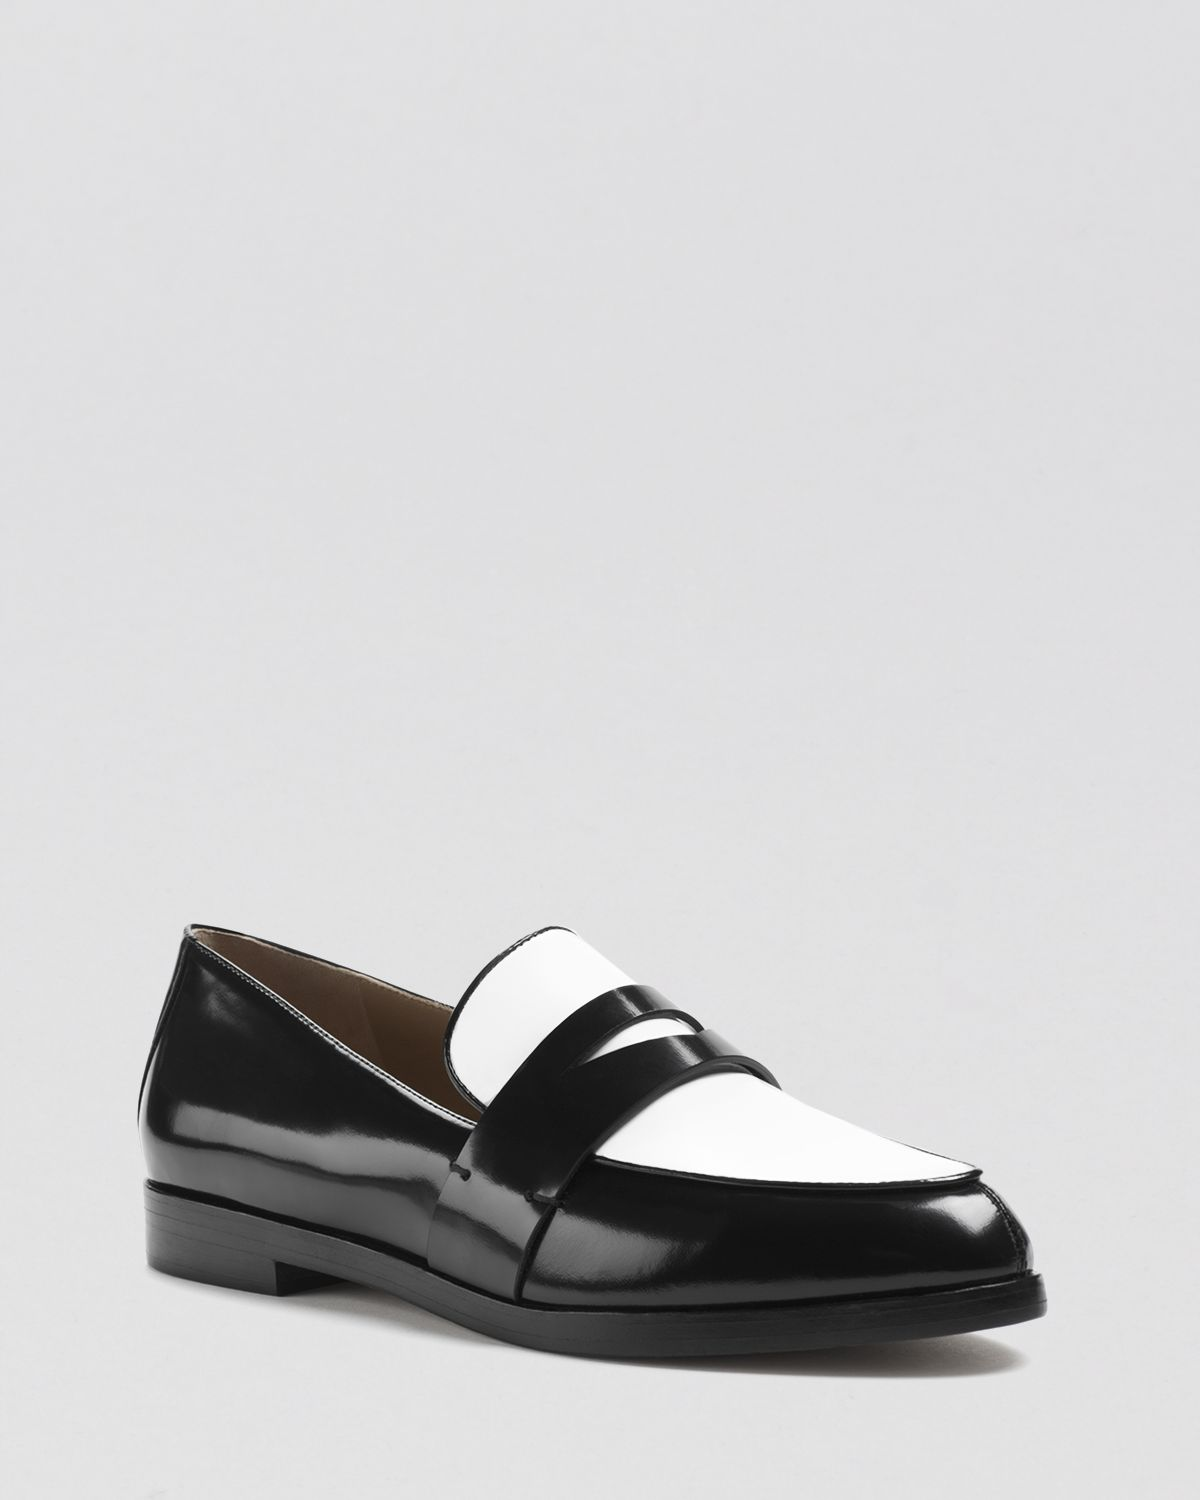 Lyst Michael Kors Penny Loafer Flats Tipton In Black